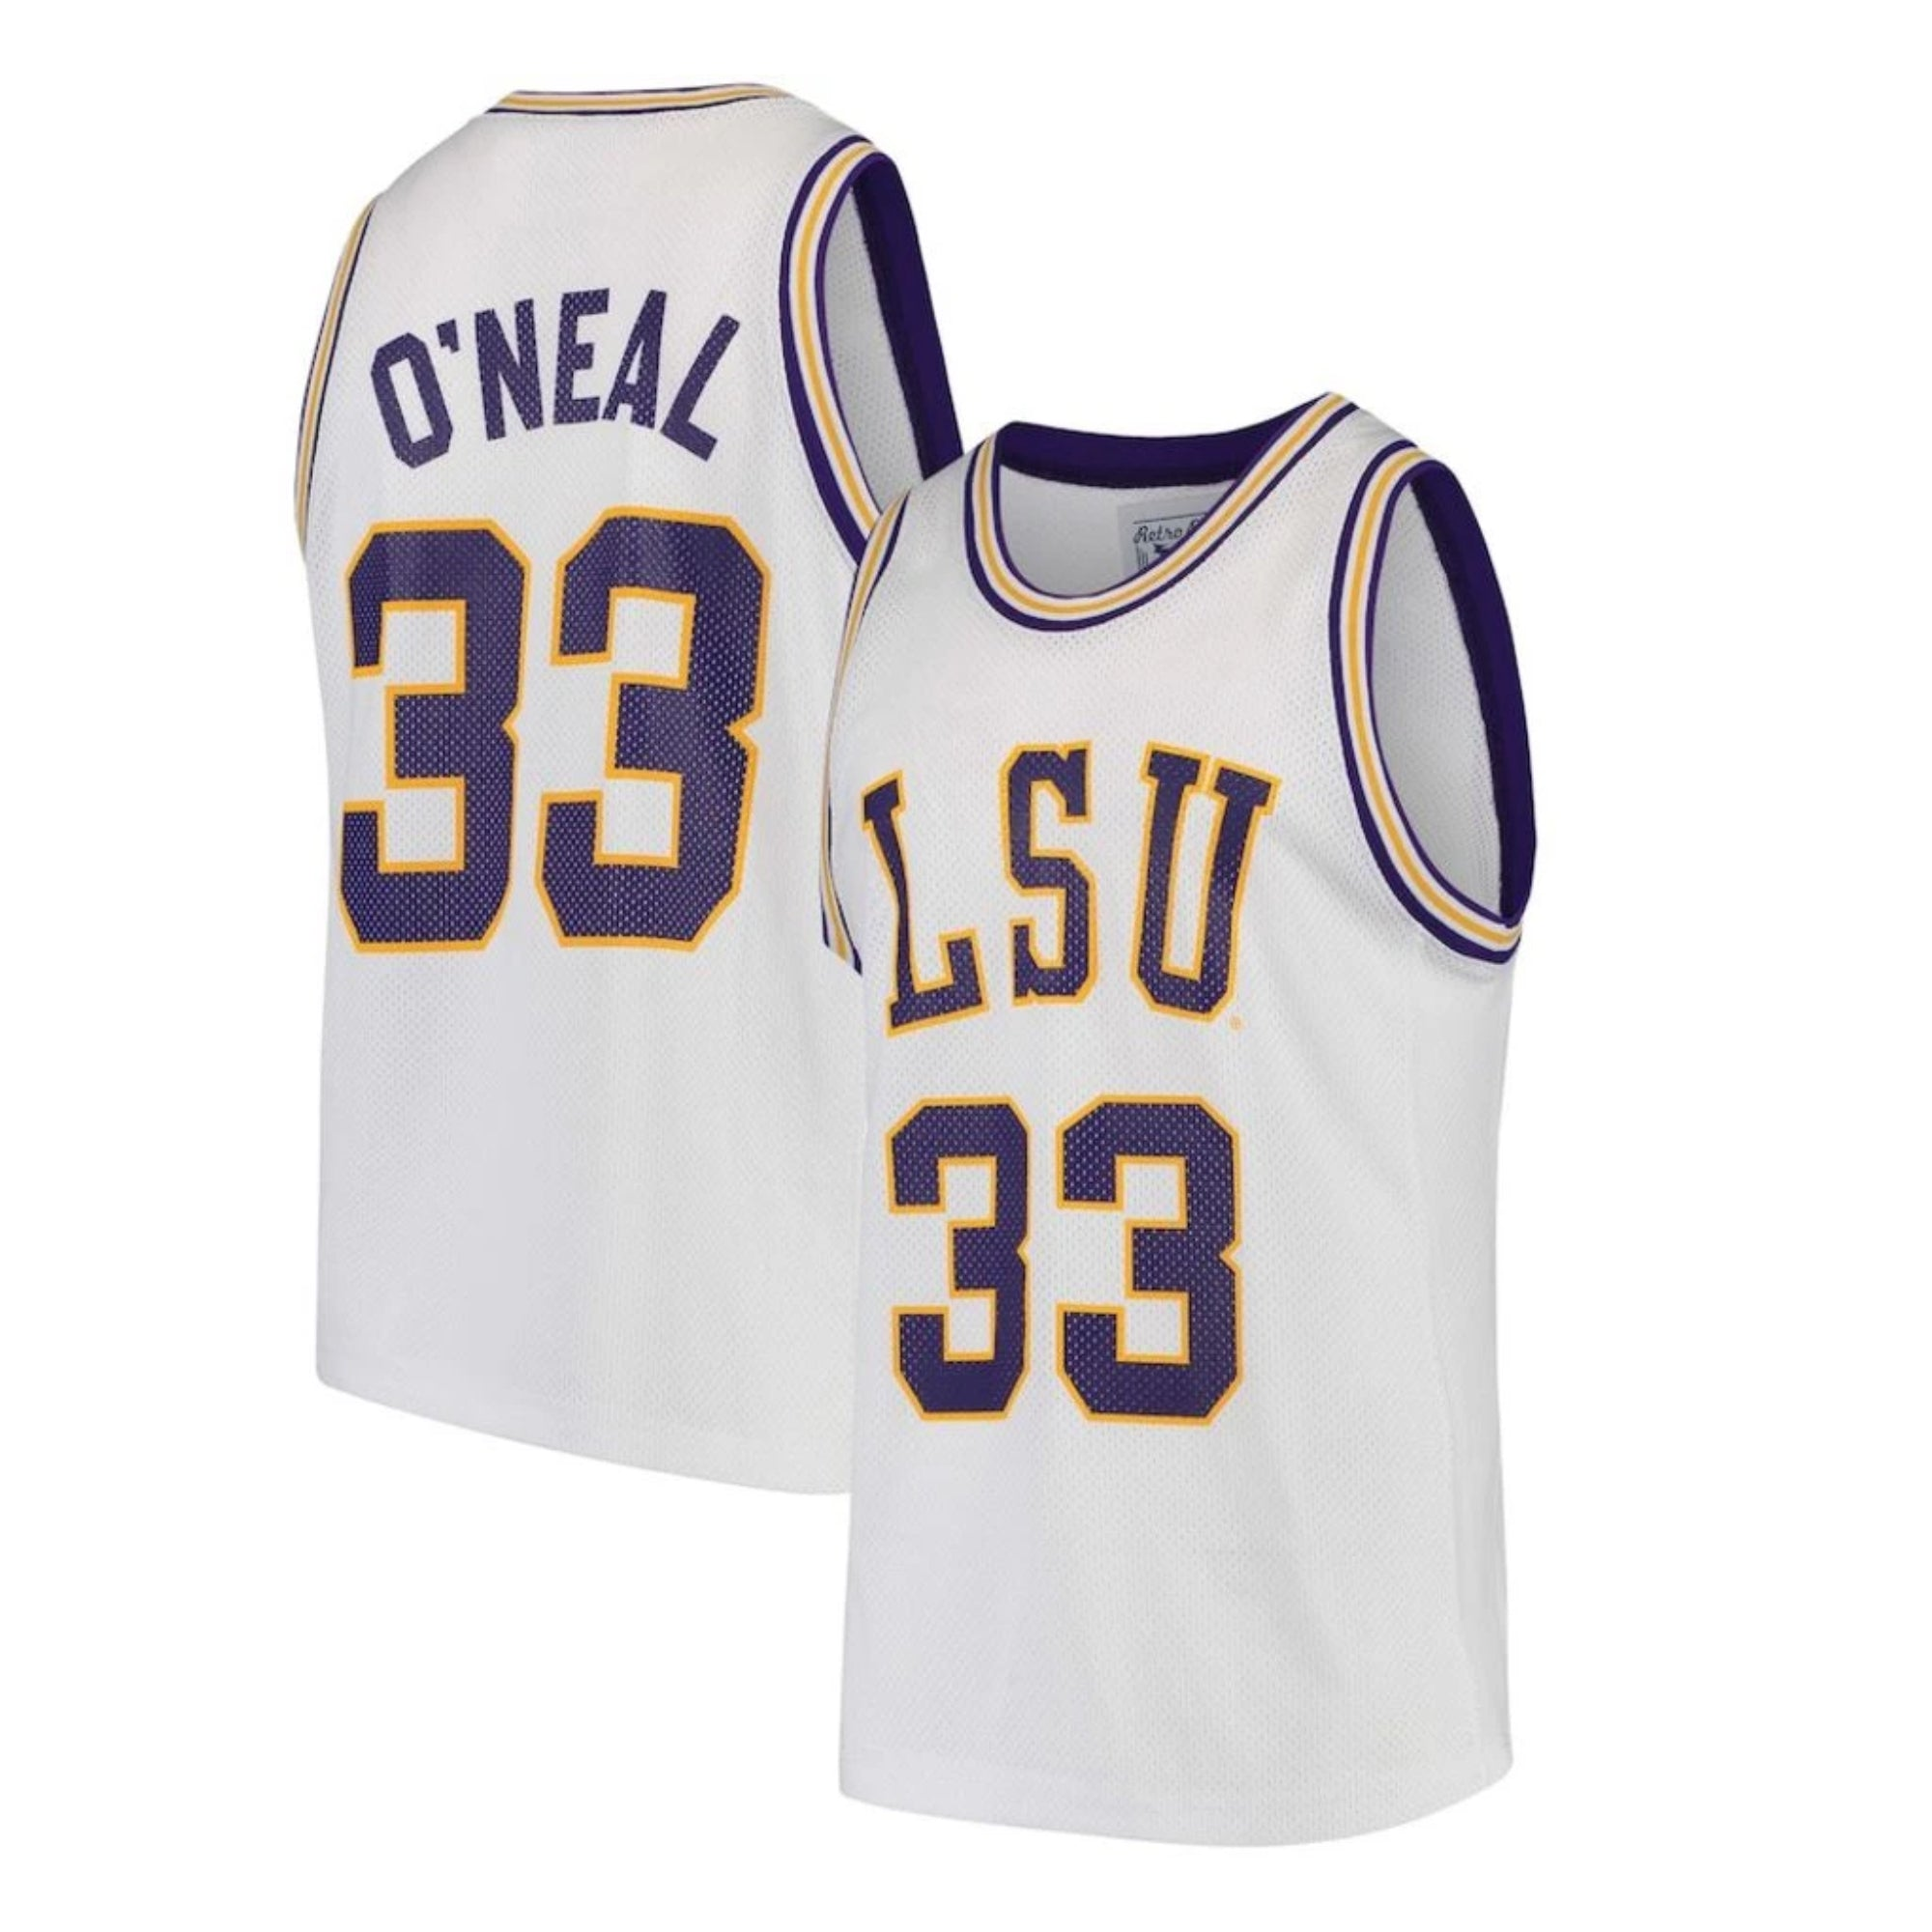 NCAAB Shaquille O'Neal LSU Tigers 33 Jersey – JerseyHouse